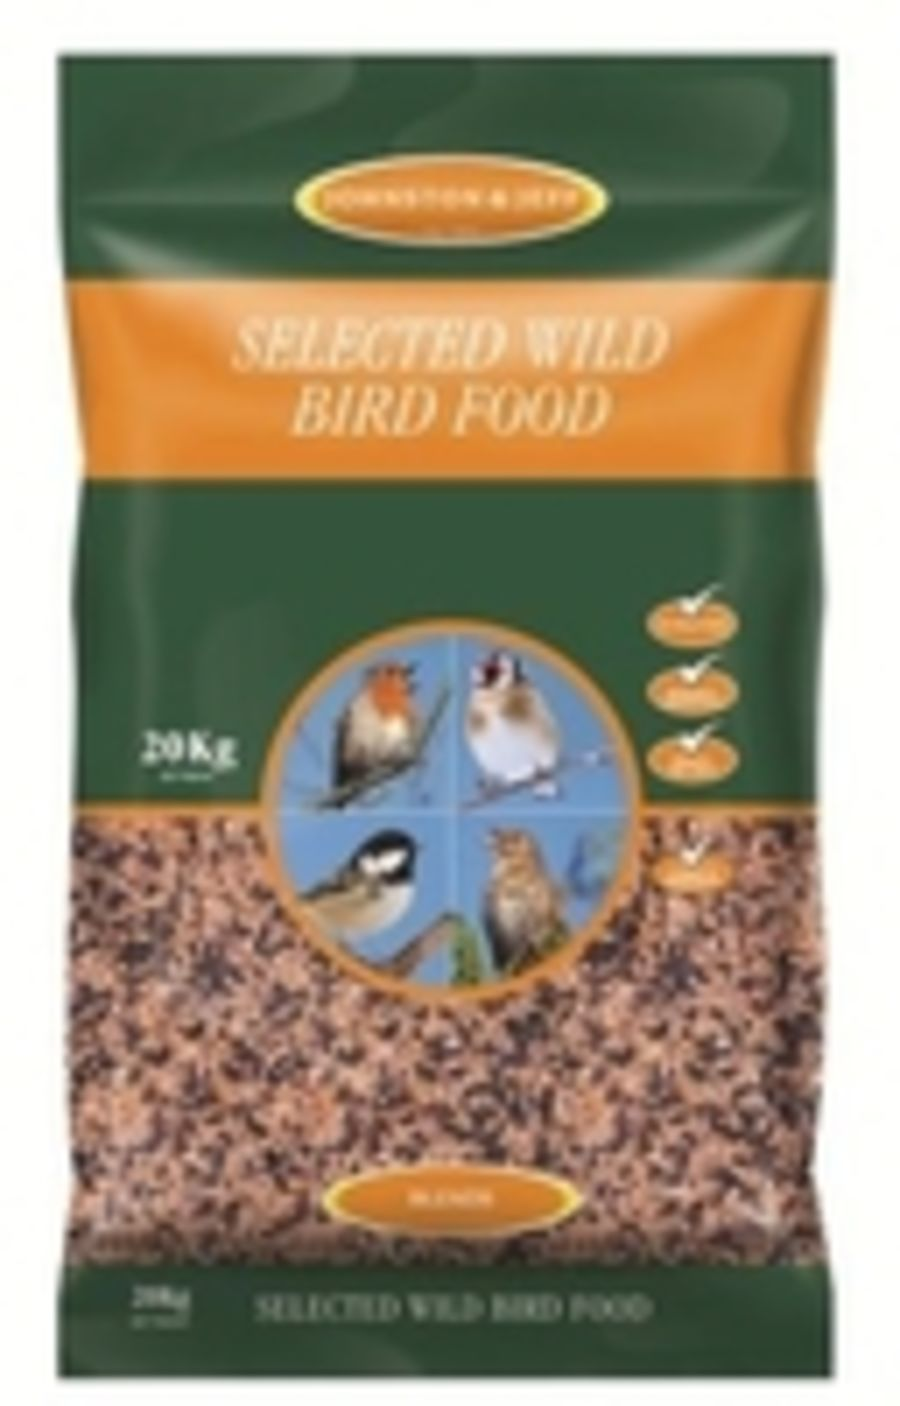 Johnston & Jeff Selected Wild Bird Seed from